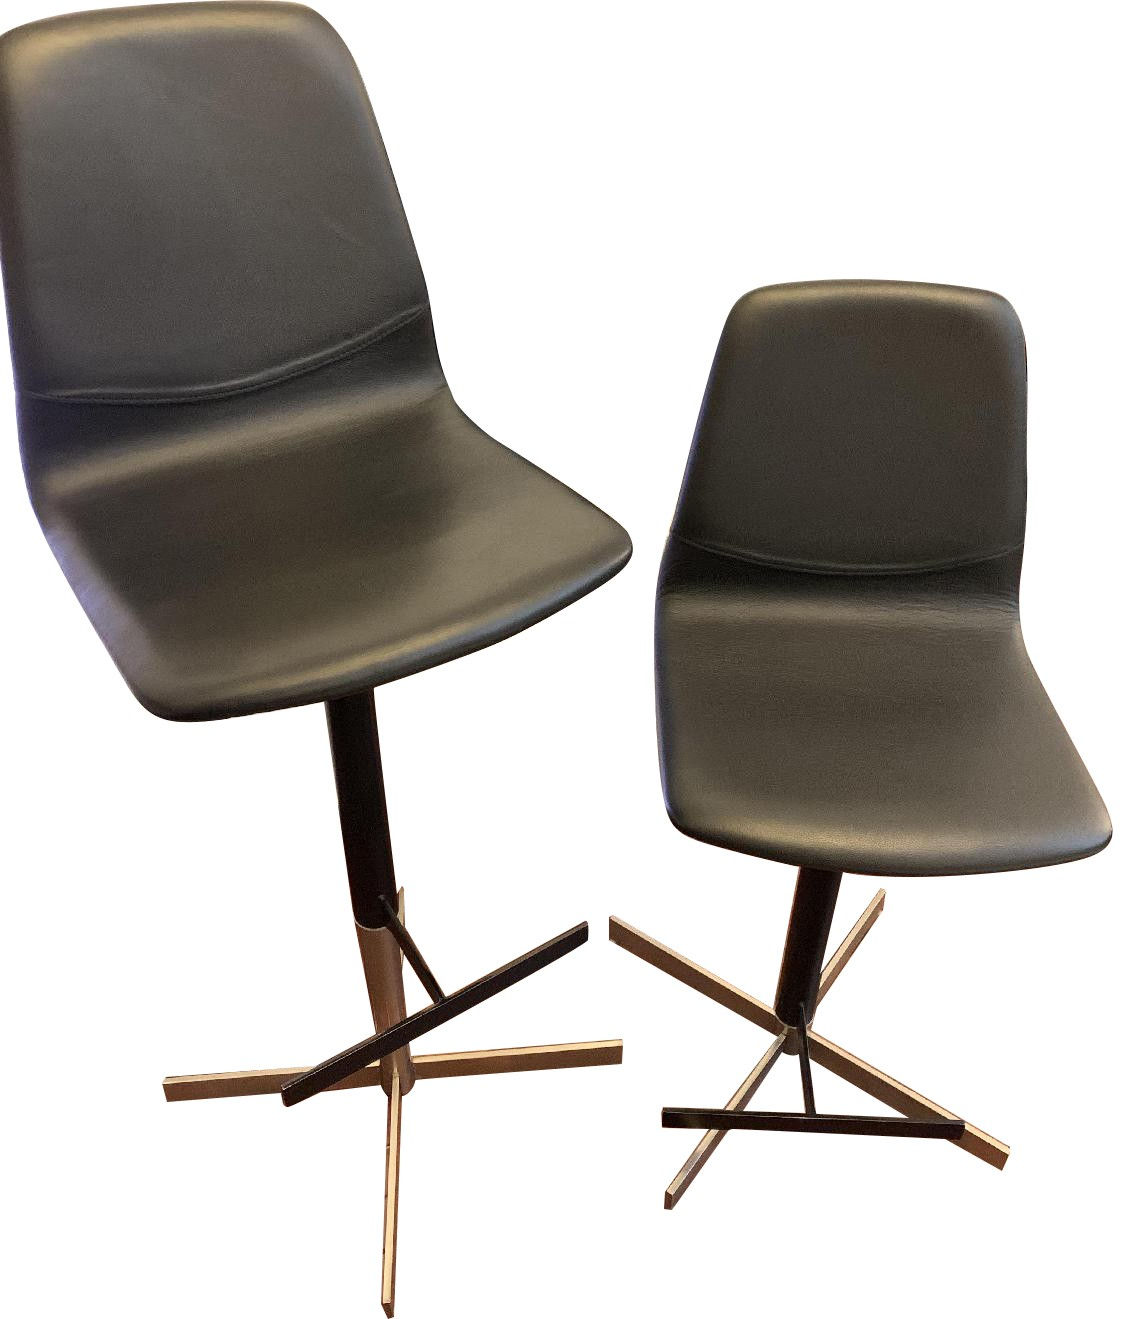 BoConcept London Bar Stools in Black Rio Leather